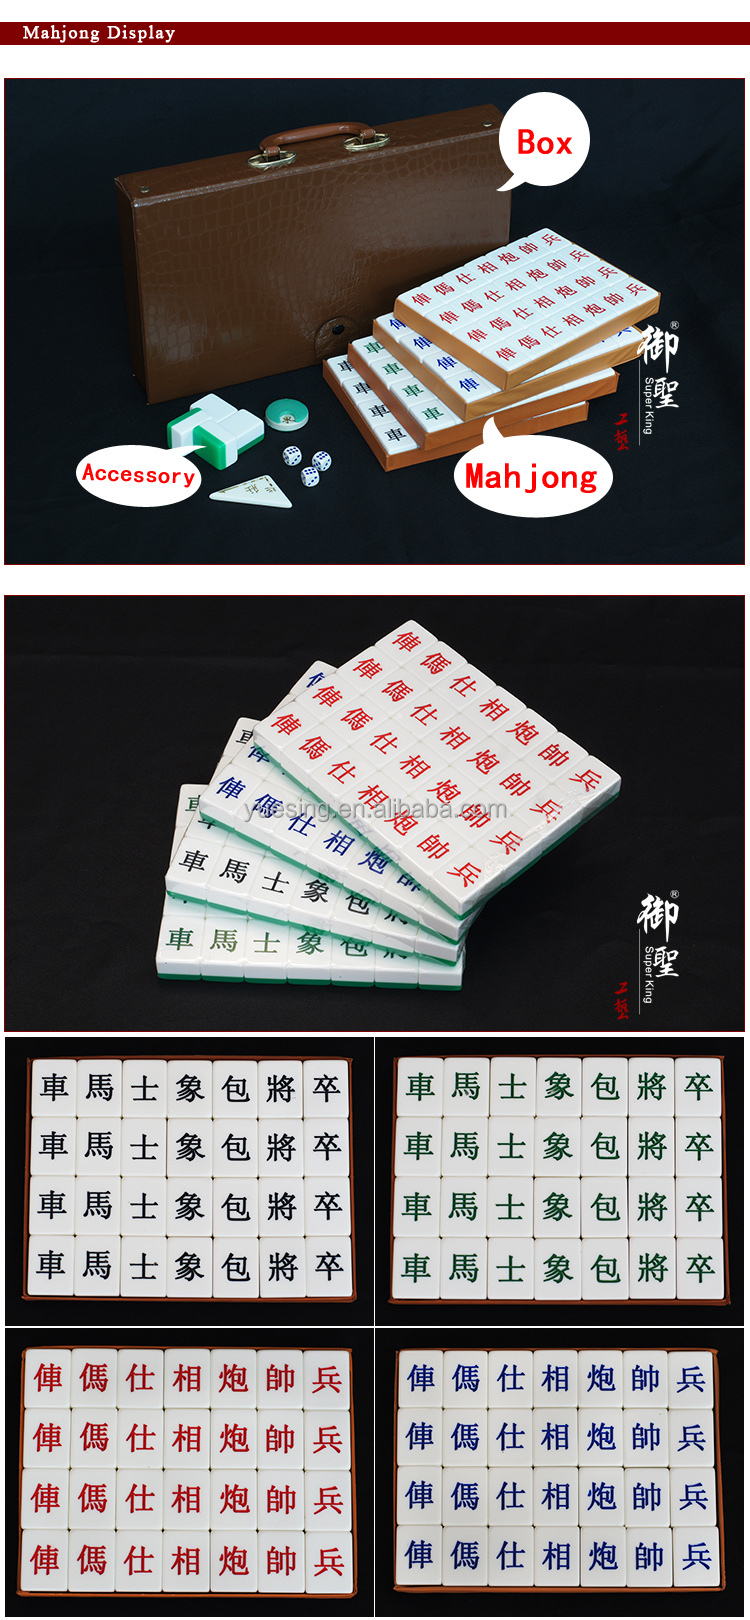 Chinese chess gambling bingo online no deposit needed